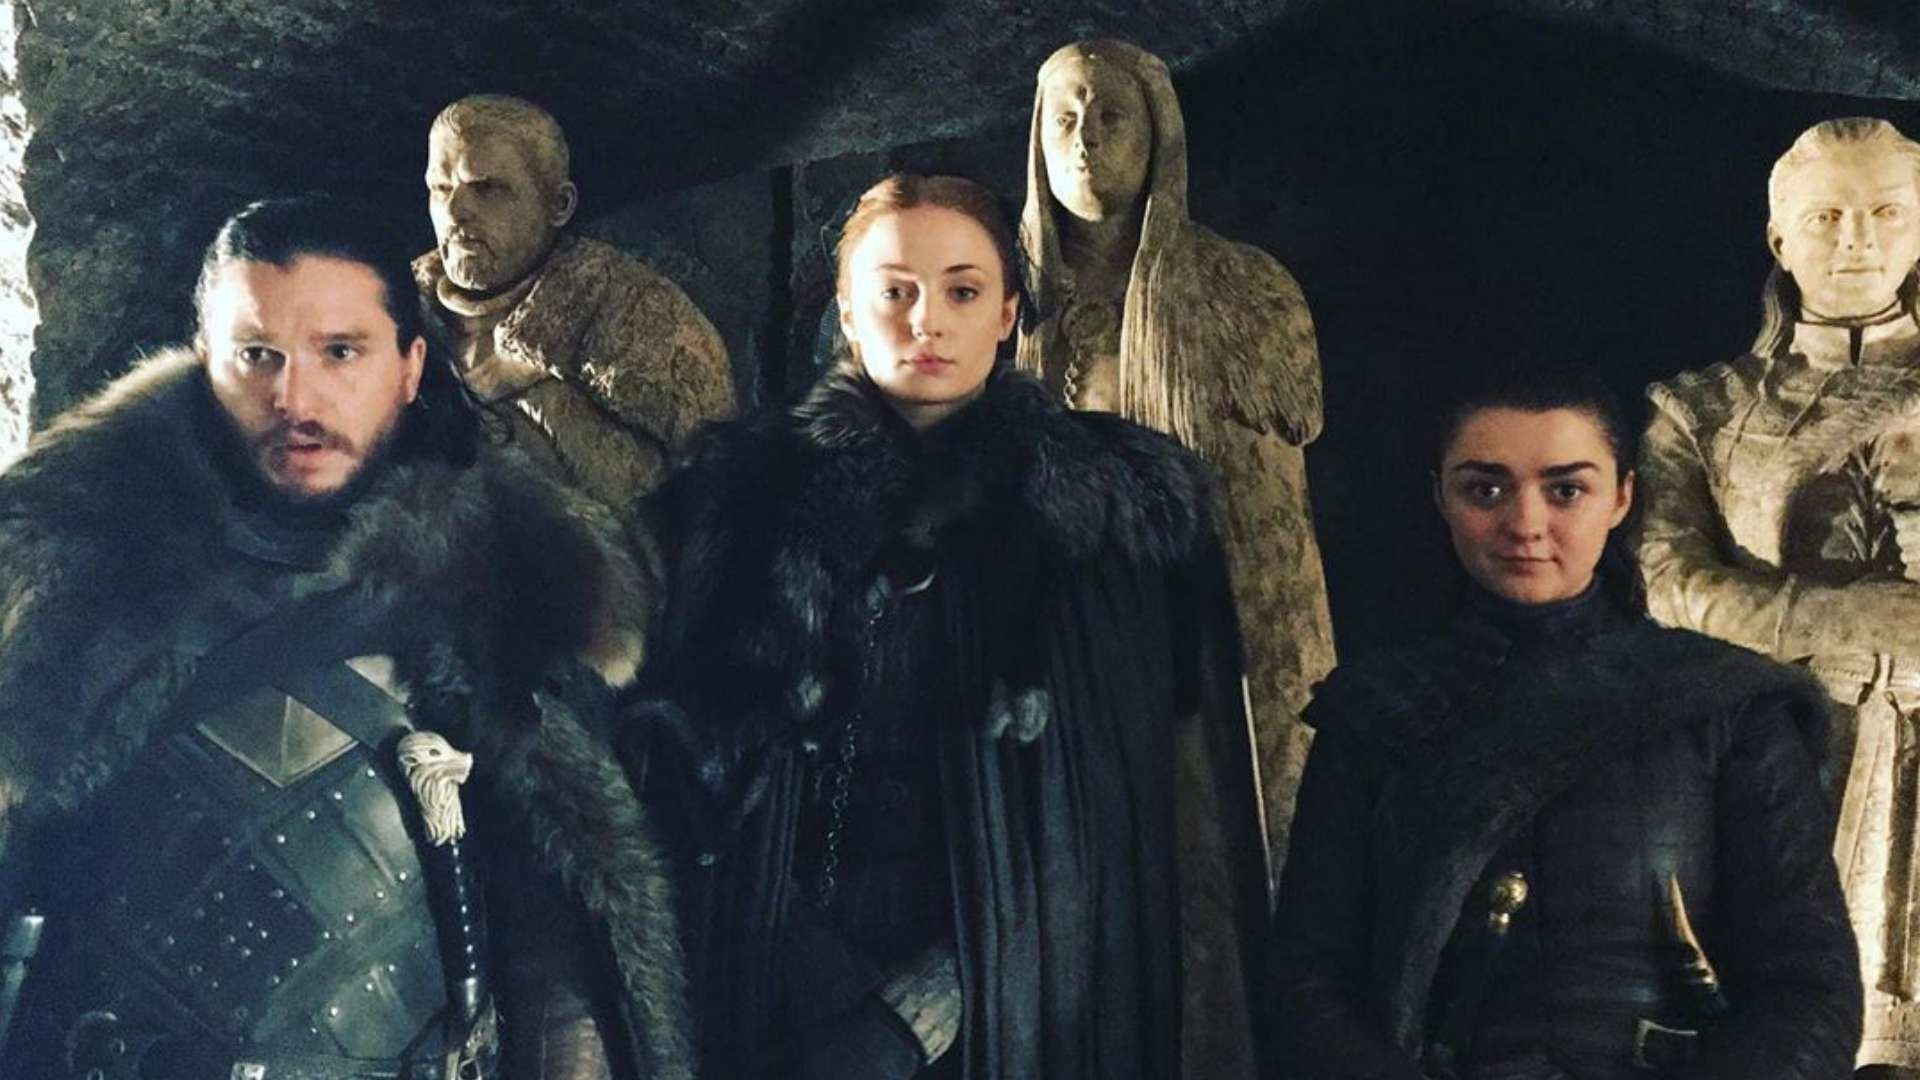 The 'Game Of Thrones' Prequel Has Started Filming